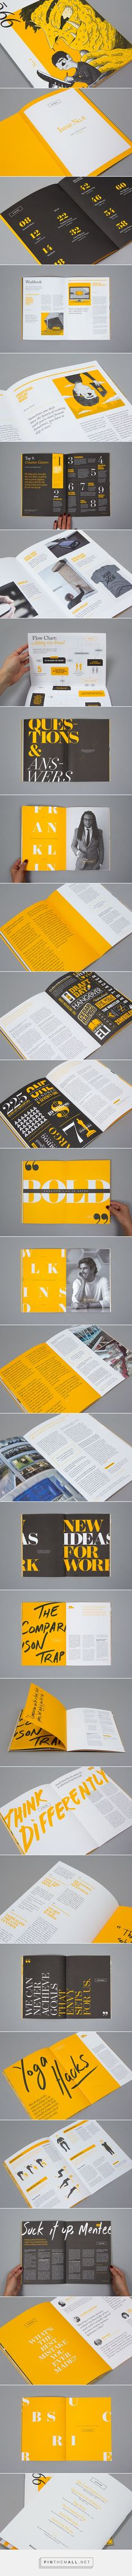 99U Quarterly Magazine Issue No4